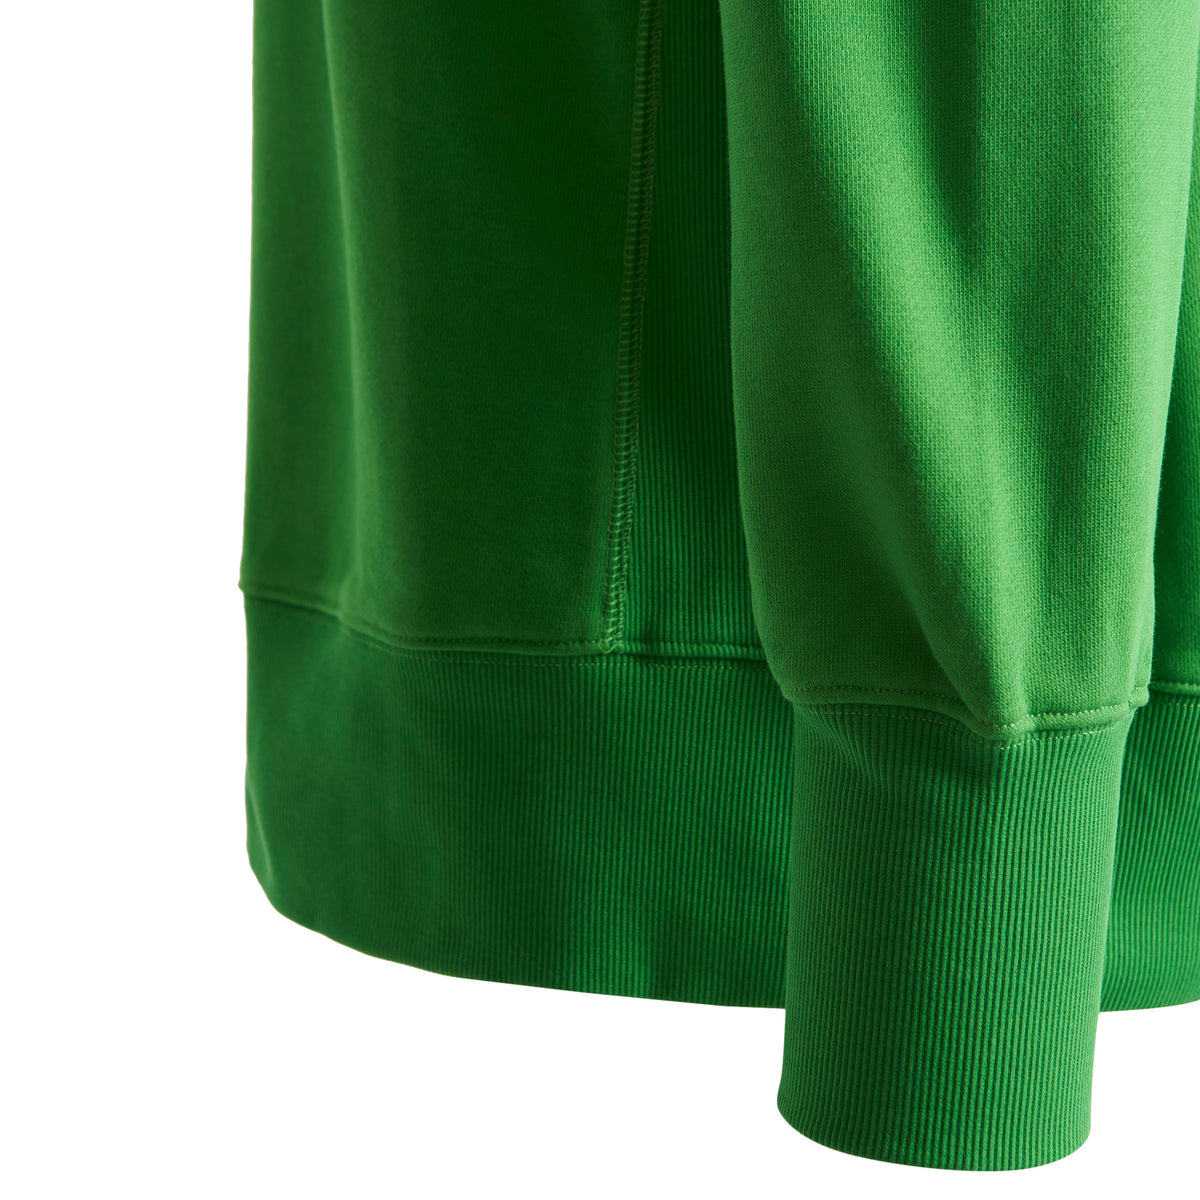 Henri Lloyd X Nigel Cabourn Technical Sweater Emerald Green Cuff